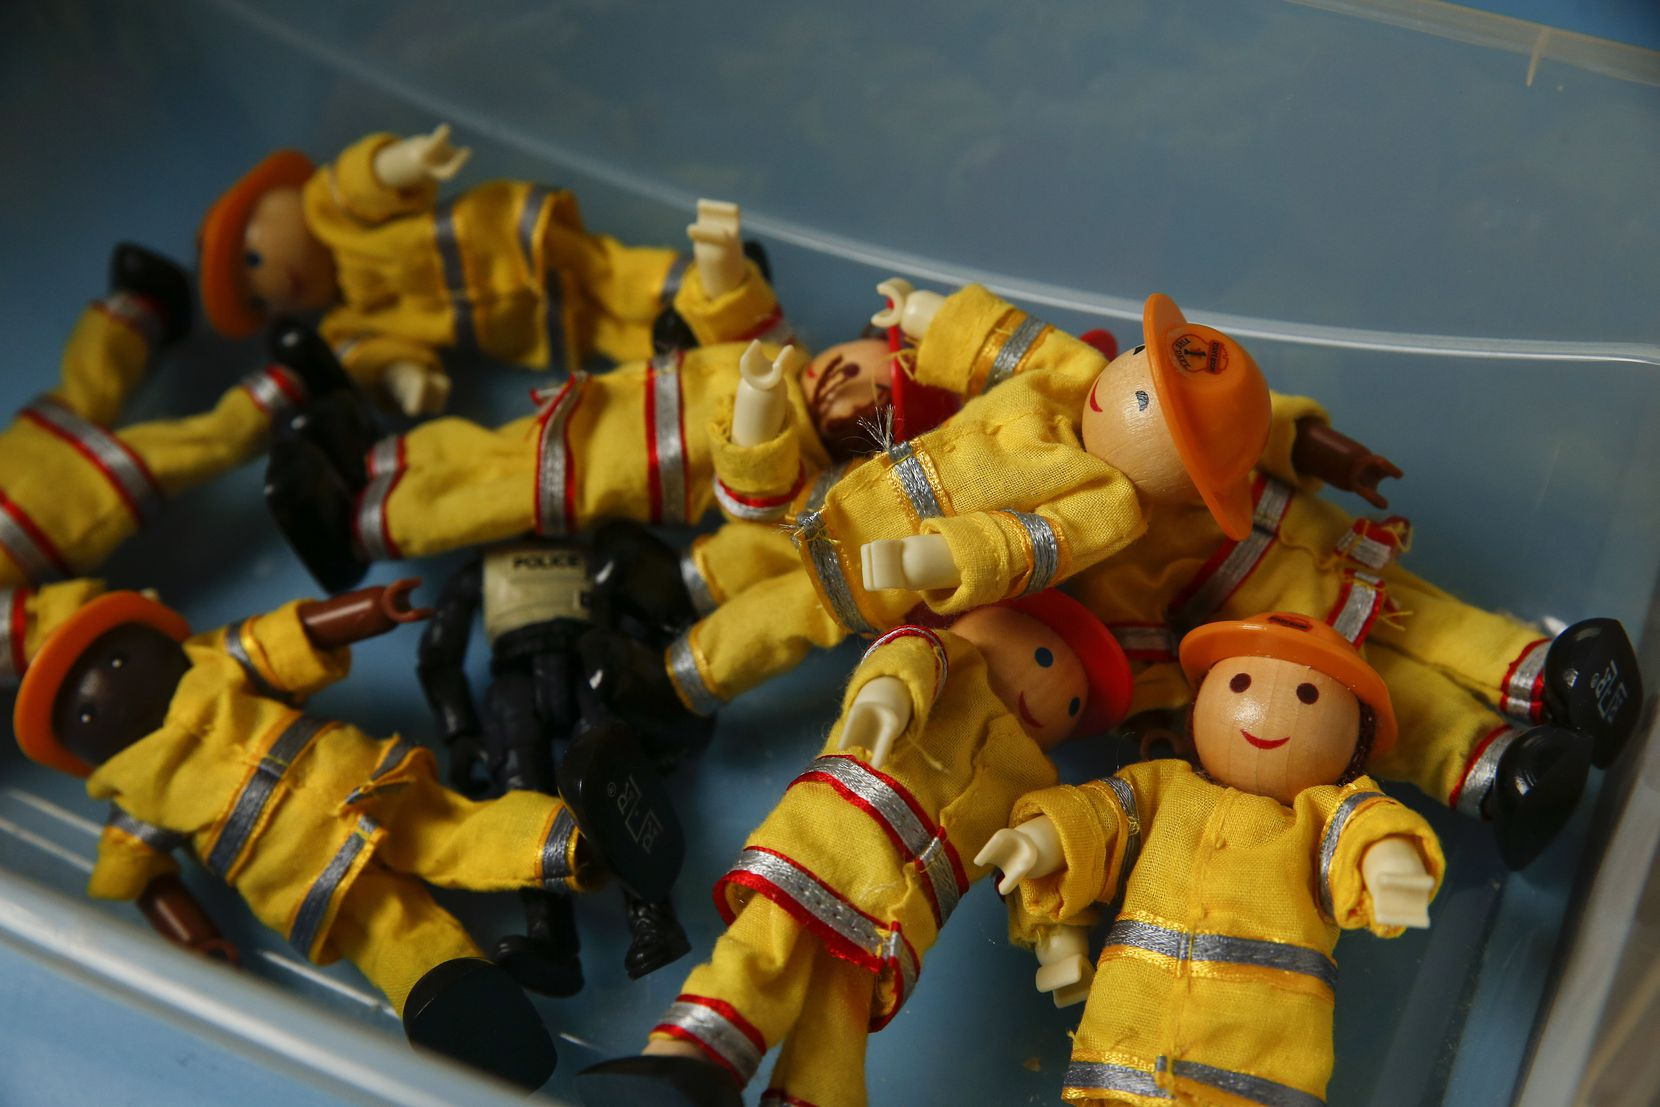 Firefighter dolls in a therapy play room at Momentous Institute in Dallas.